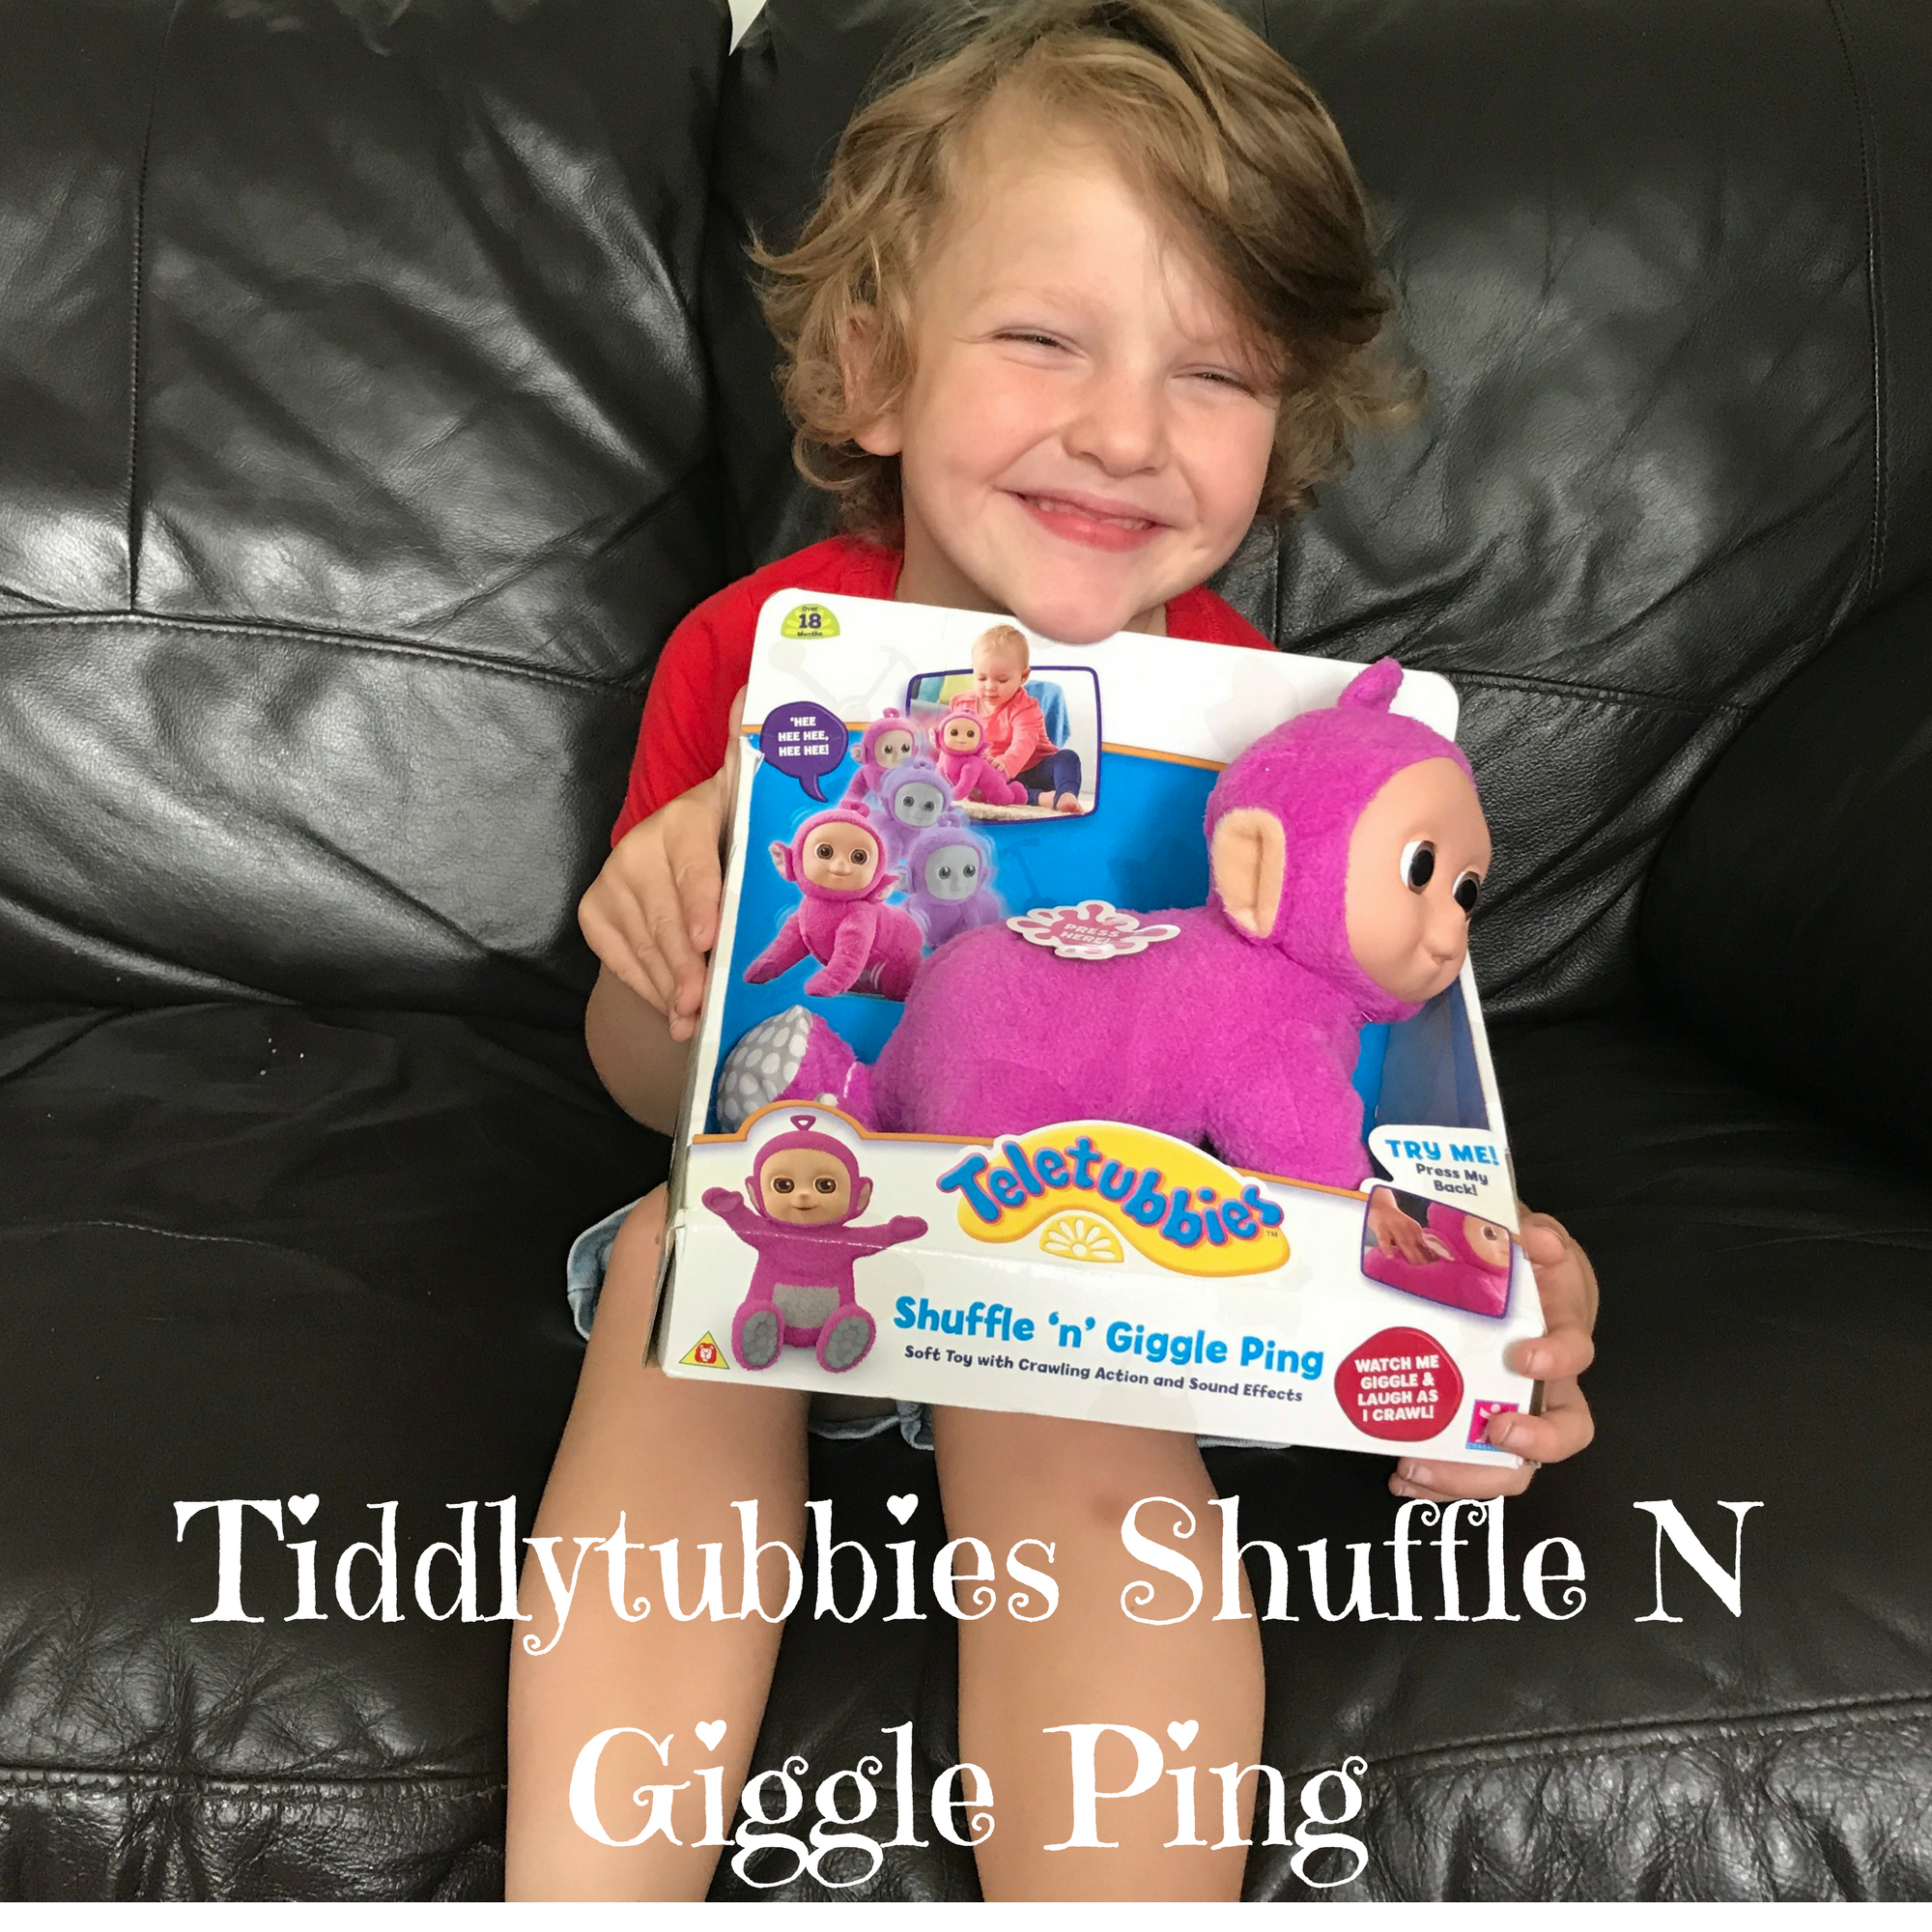 Tiddlytubbies Shuffle N Giggle Ping